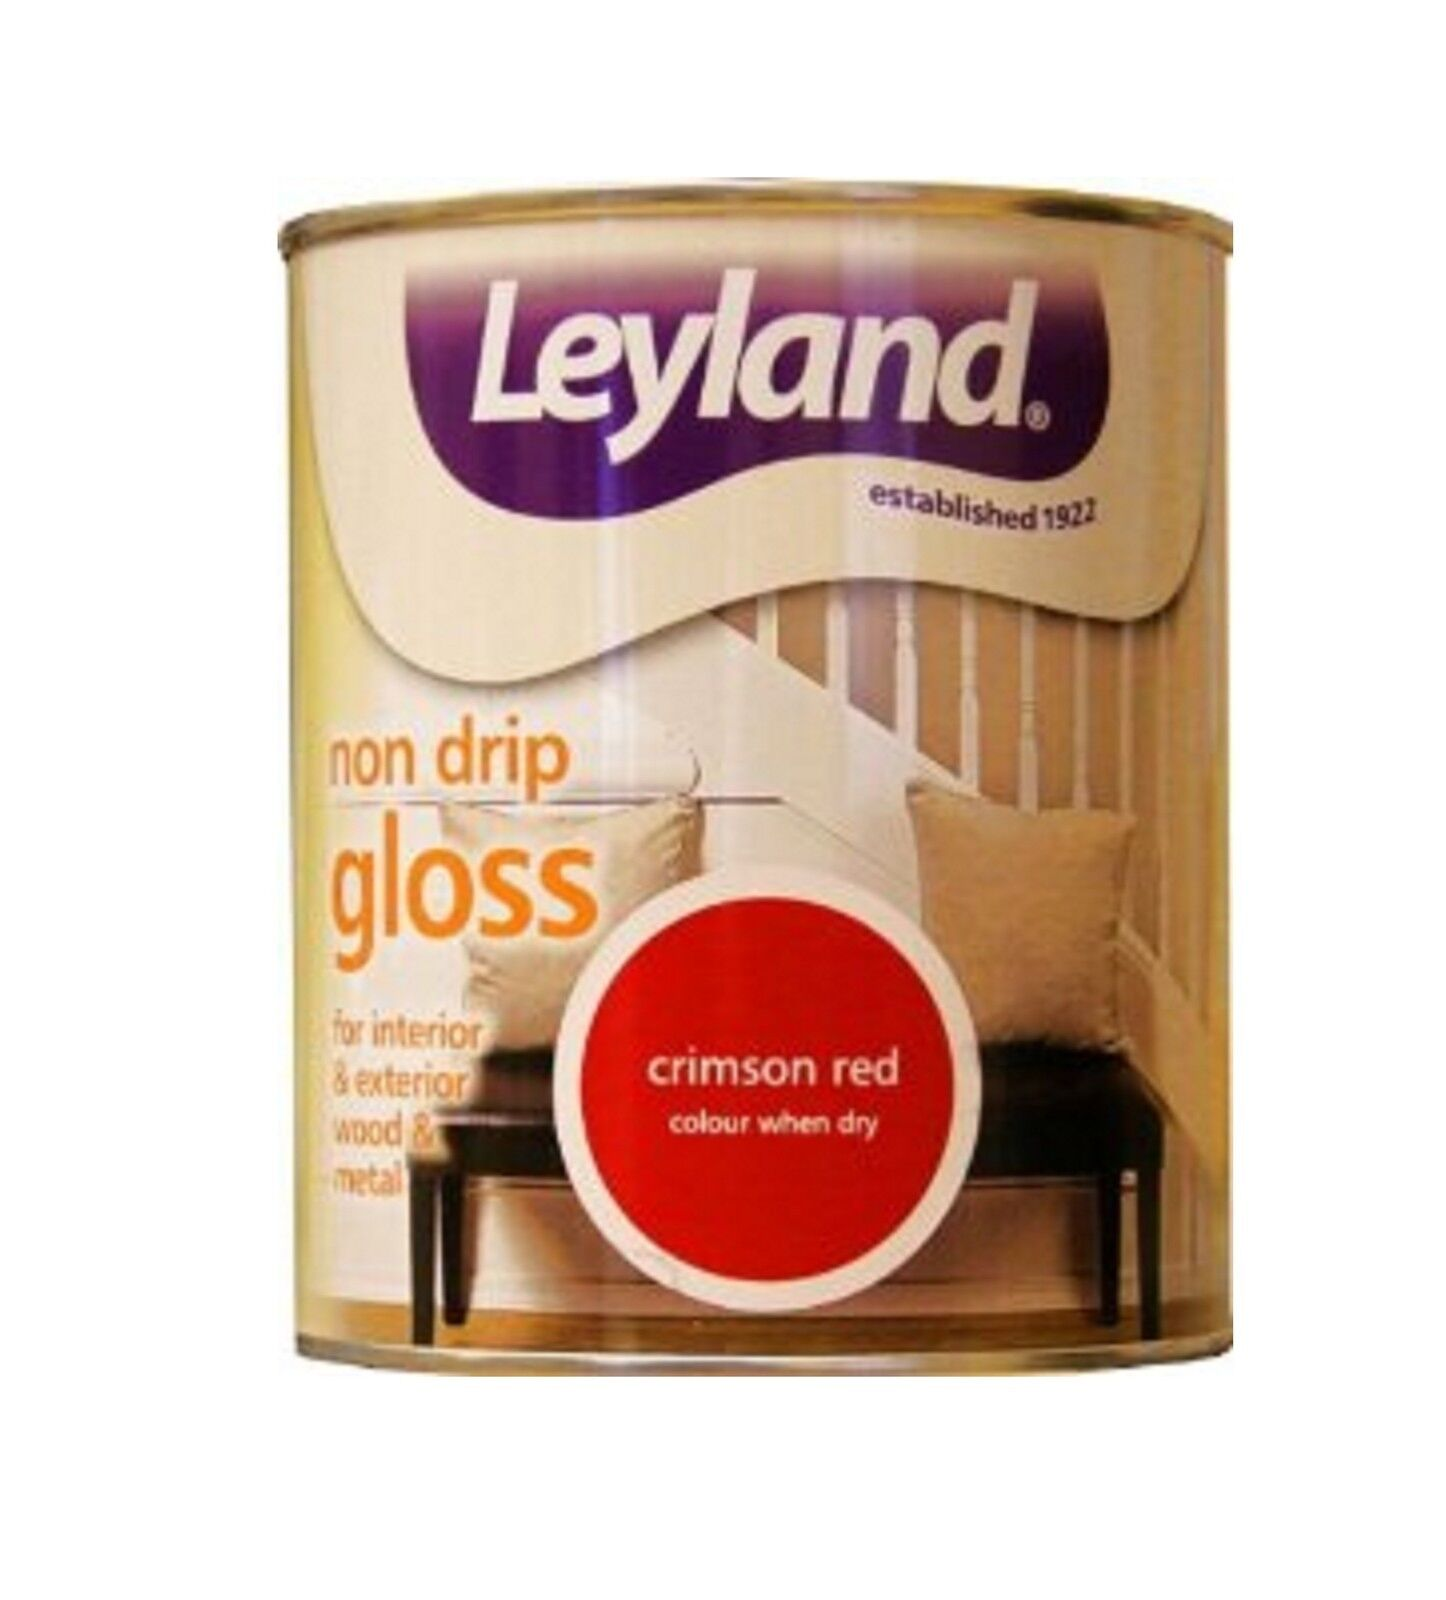 Leyland Non Drip Gloss Paint 750ml Interior Exterio Wood Metal Yellow Red Black Ebay